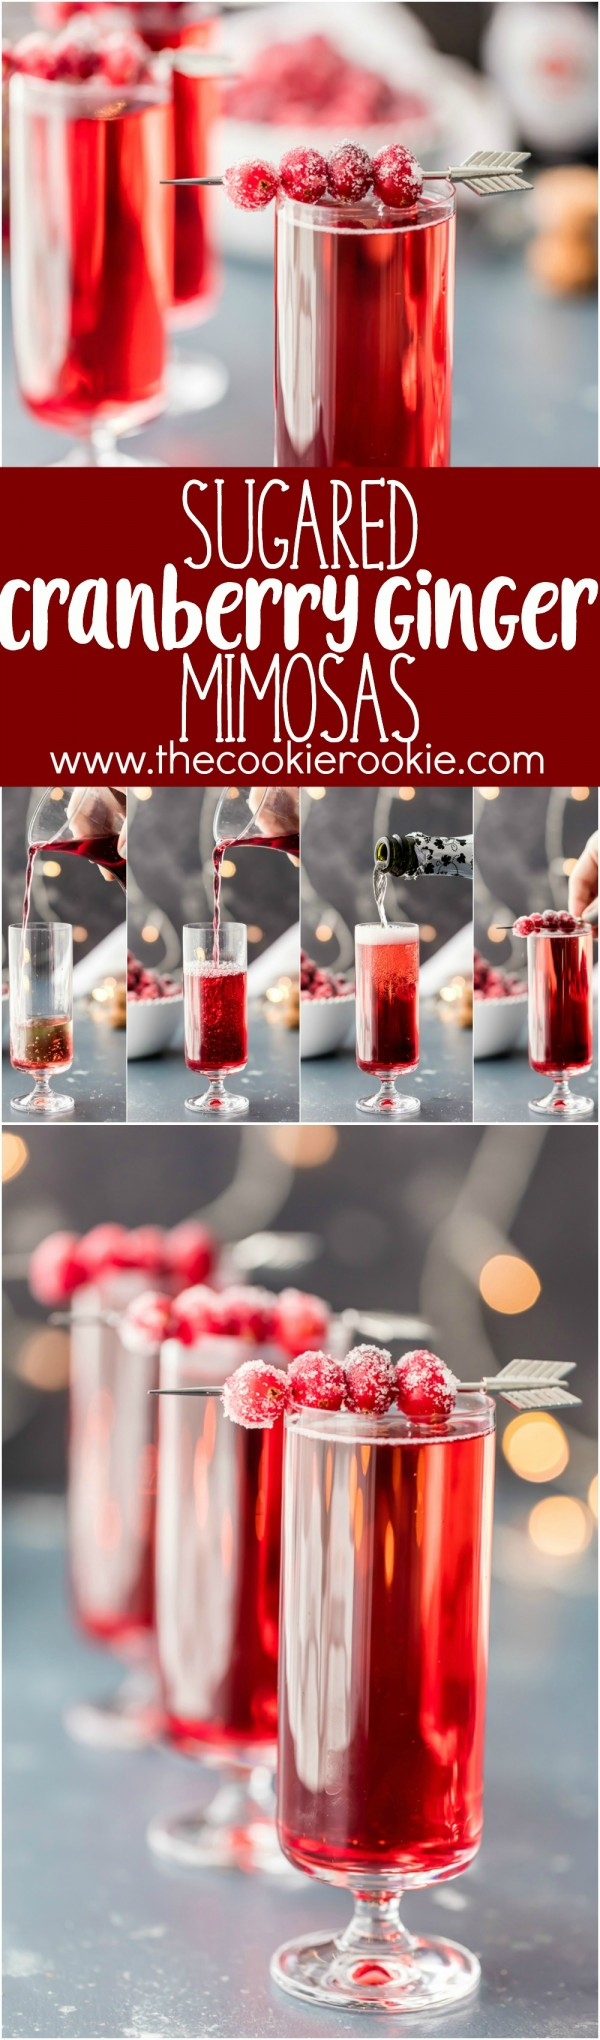 Sugared Cranberry Ginger Mimosas, ONLY THREE INGREDIENTS! Easy holiday cocktail recipe perfect for Thanksgiving, Christmas, and Valentine's Day! Pretty Red Cocktail!